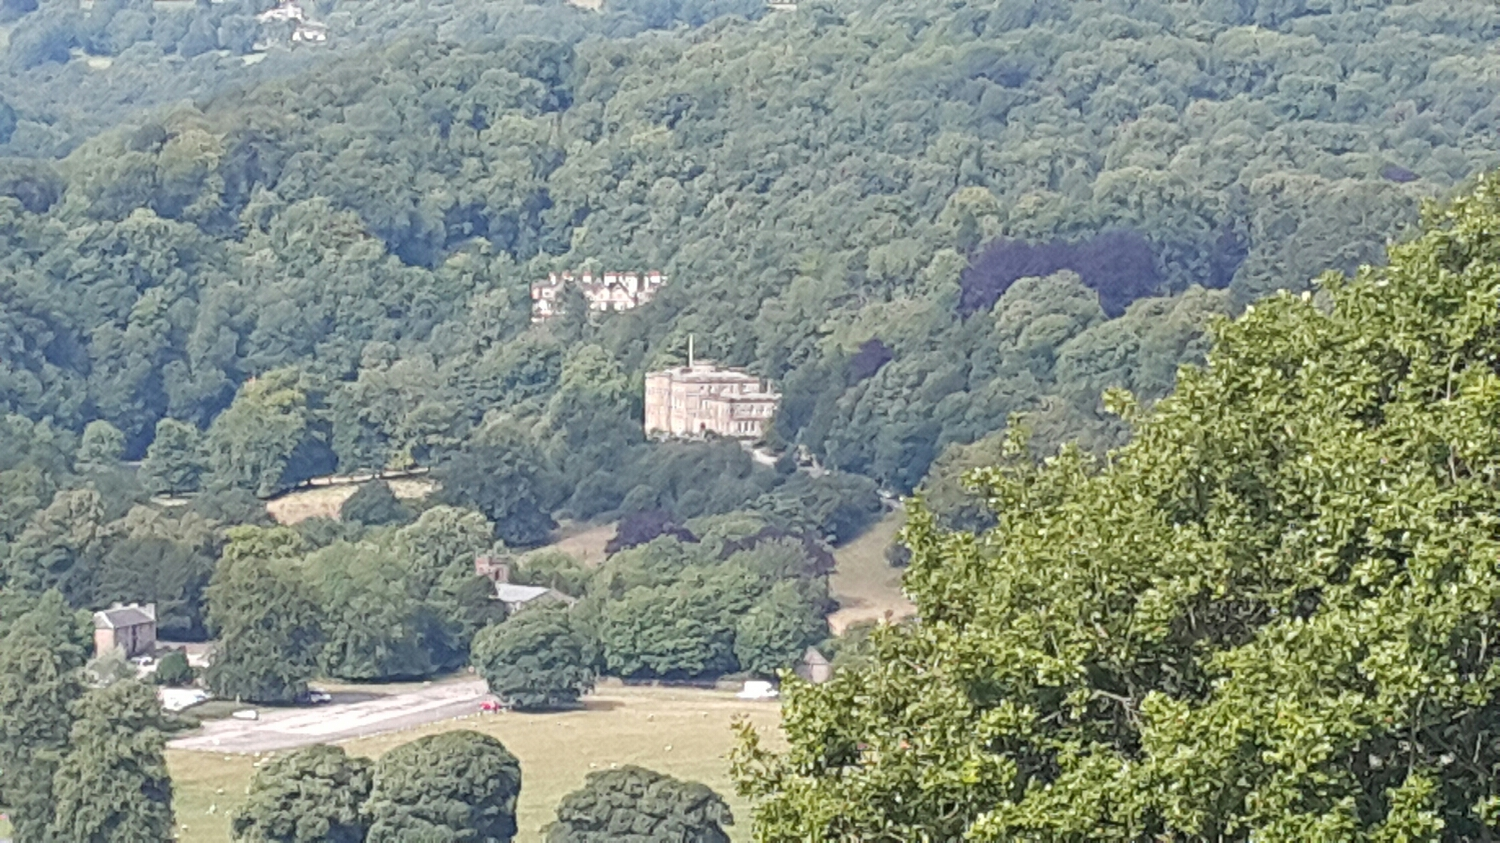 Looking down into the Valley and this massive house.